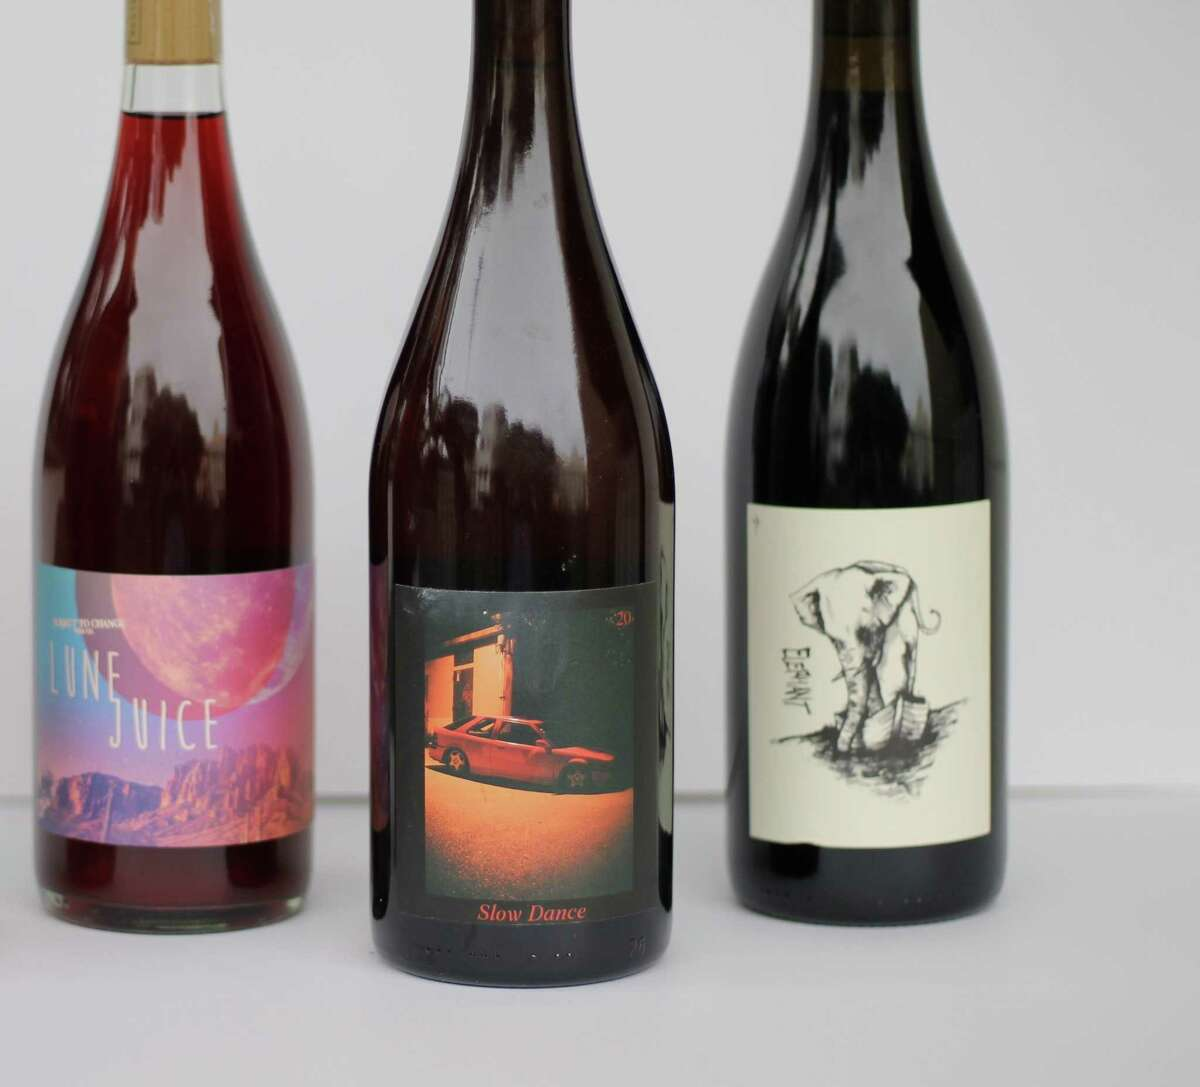 A selection of zero-zero California wines, from left: Subject to Change Lune Juice (Zinfandel); Slow Dance Pet-Nat Rose (Cabernet Sauvignon); and Absentee Elephant Red (Syrah).